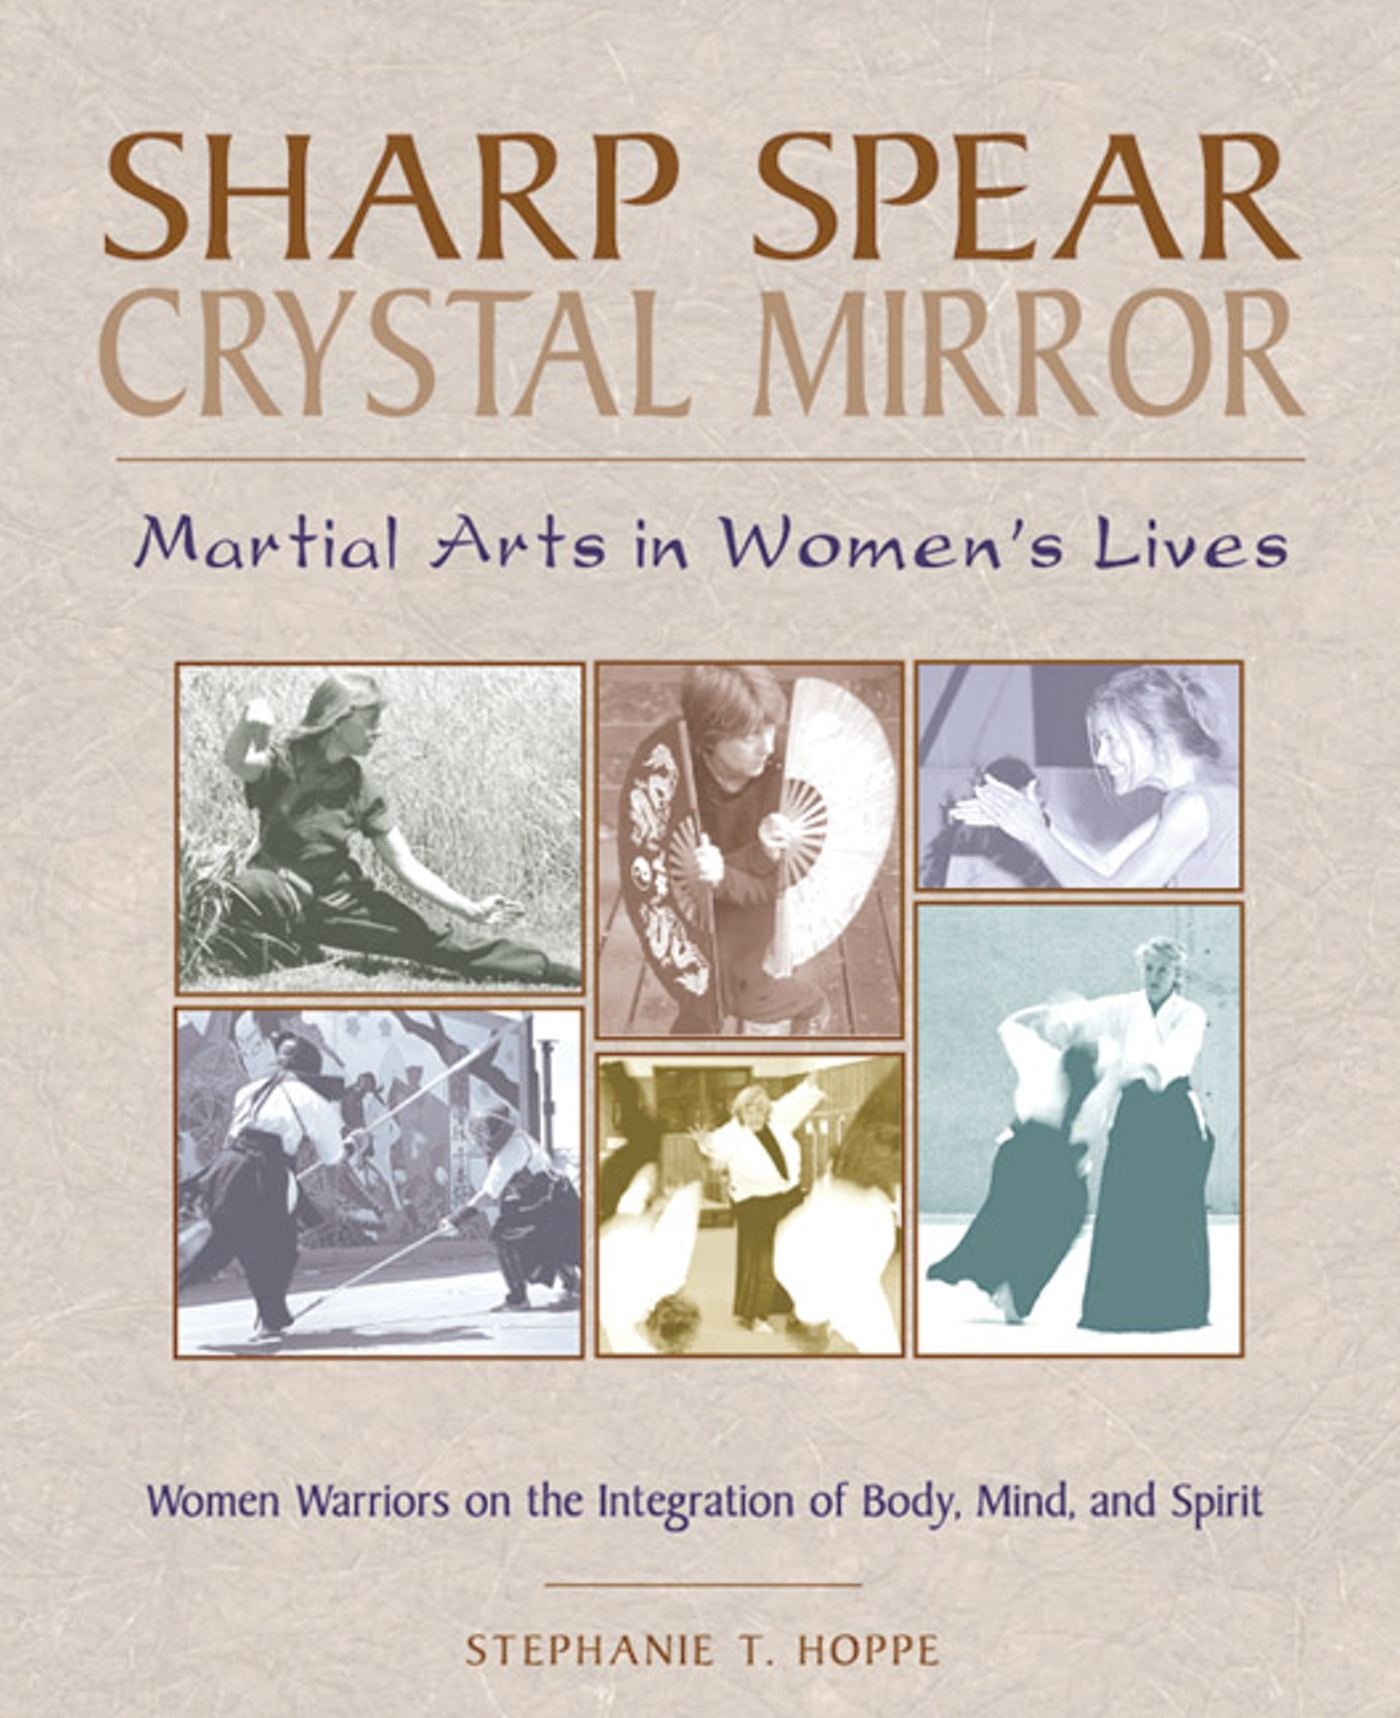 Sharp spear crystal mirror 9780892816620 hr